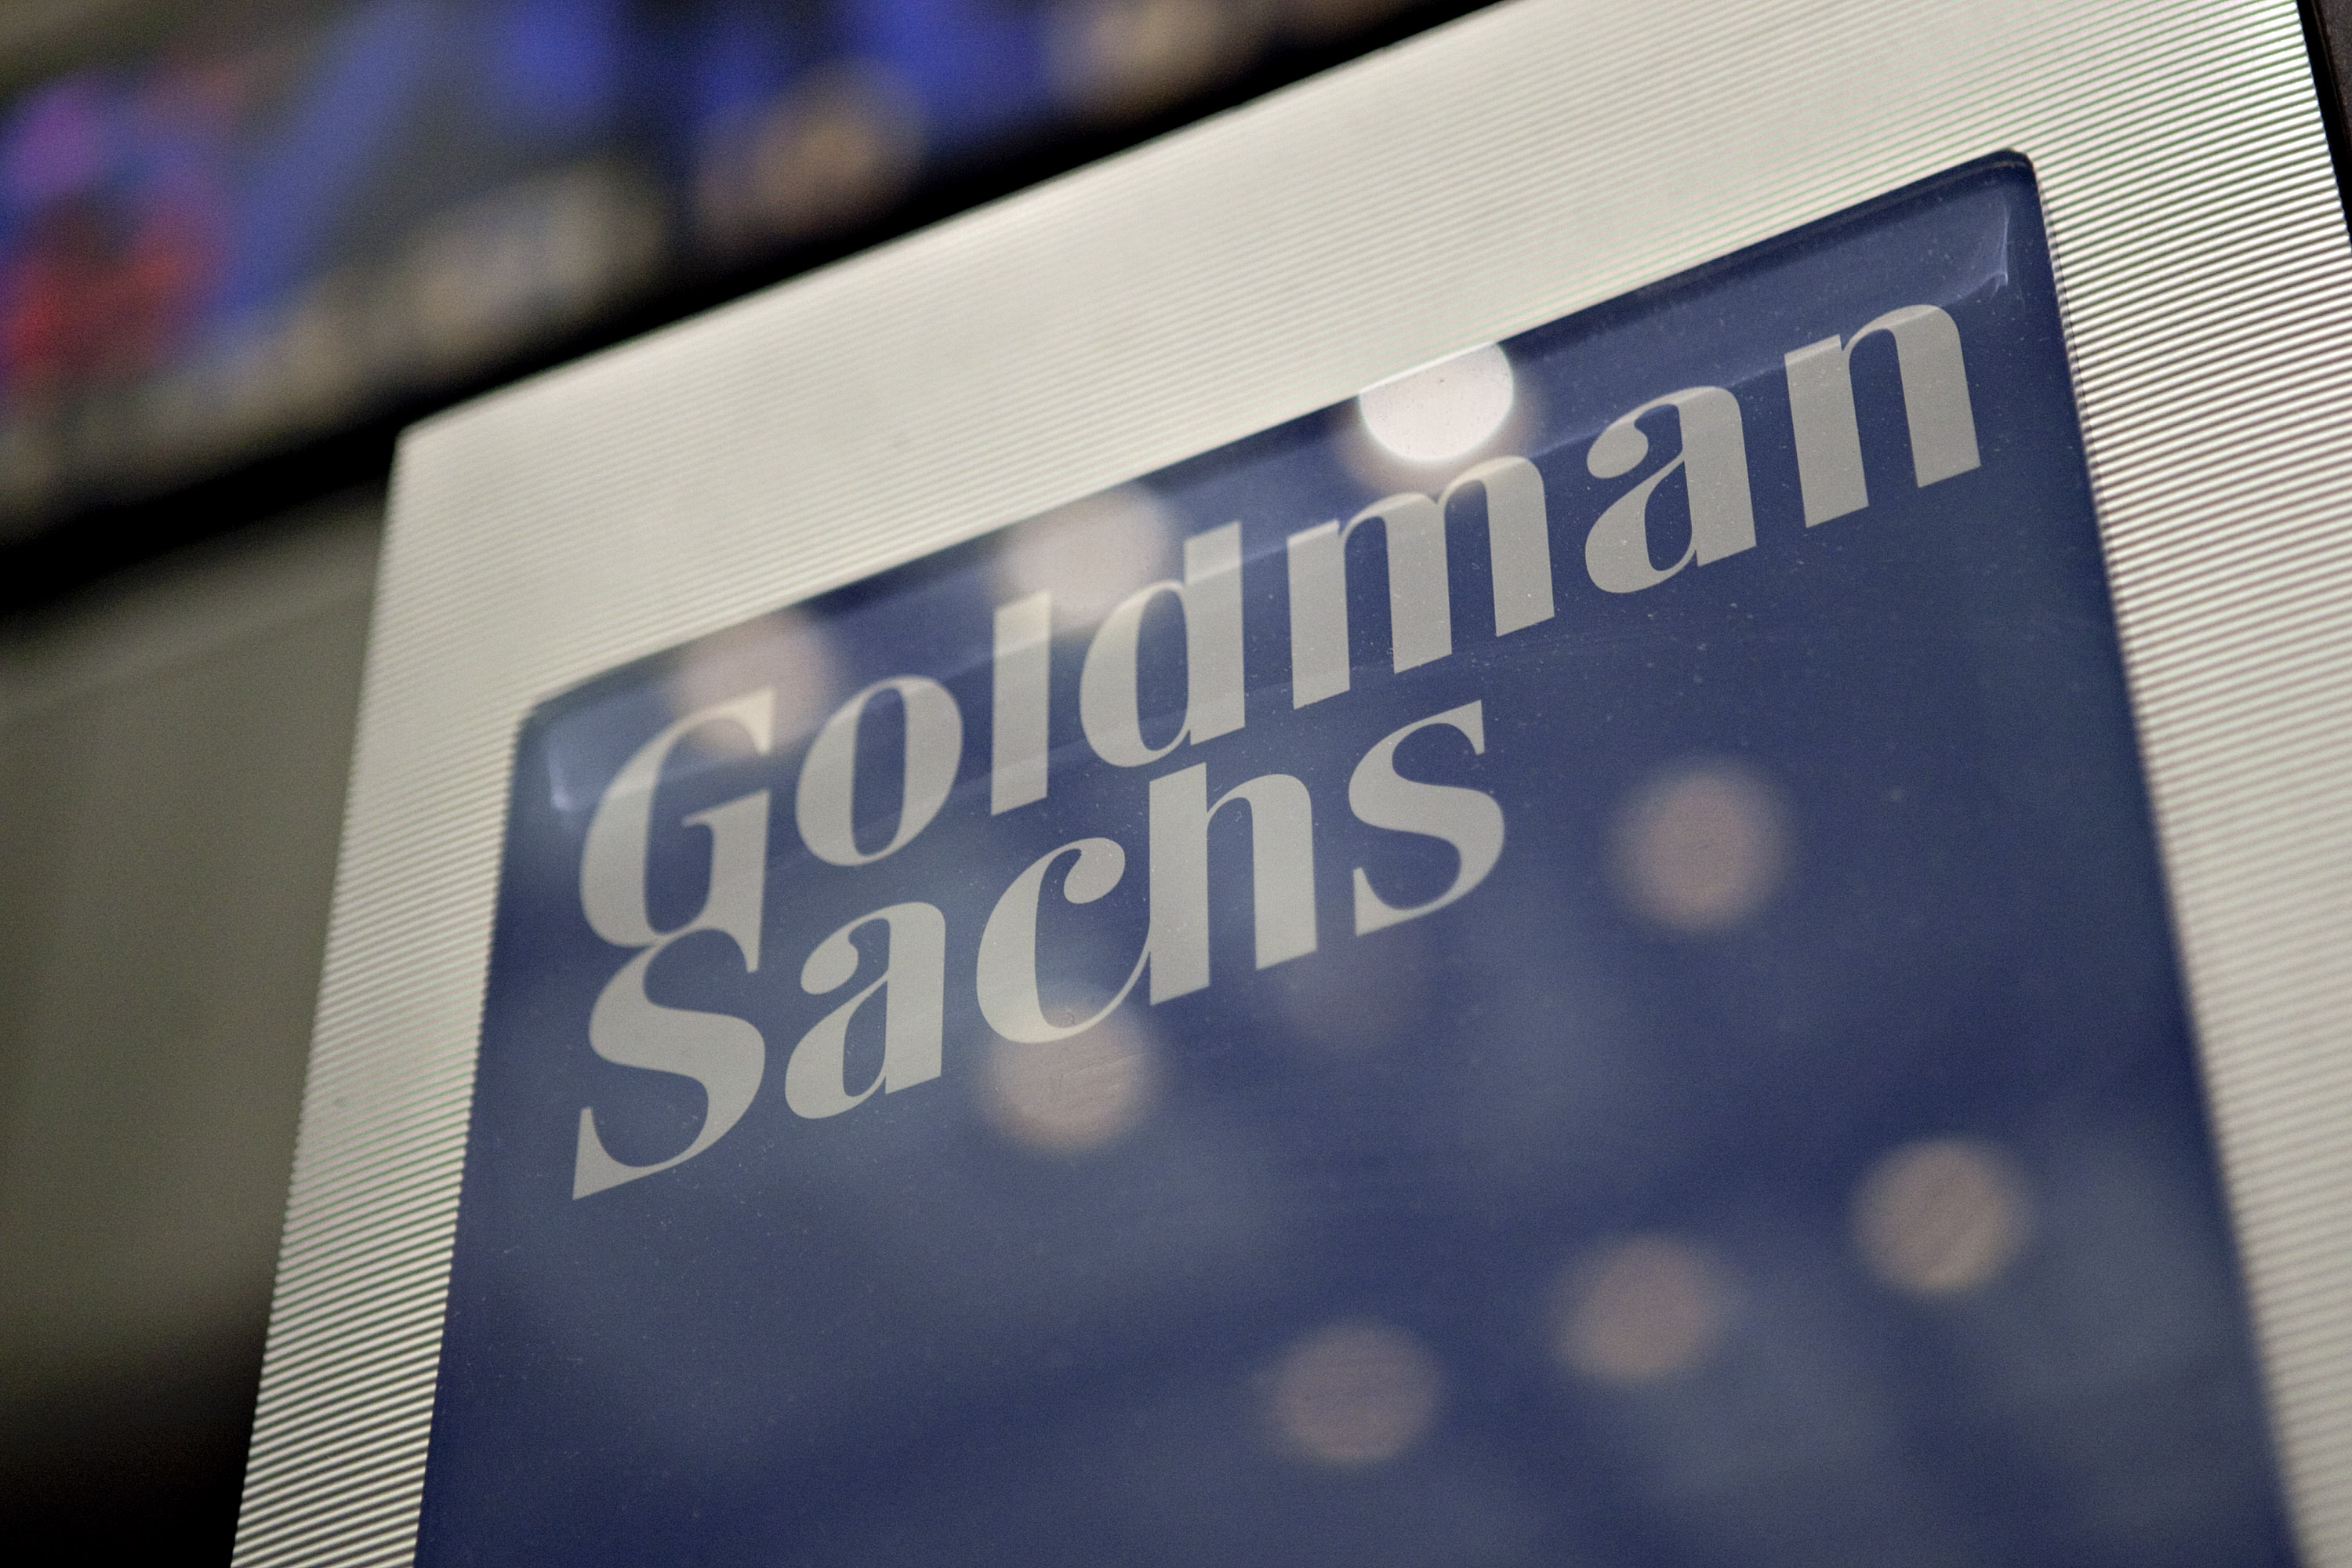 goldman sachs bloomberg newsjpg